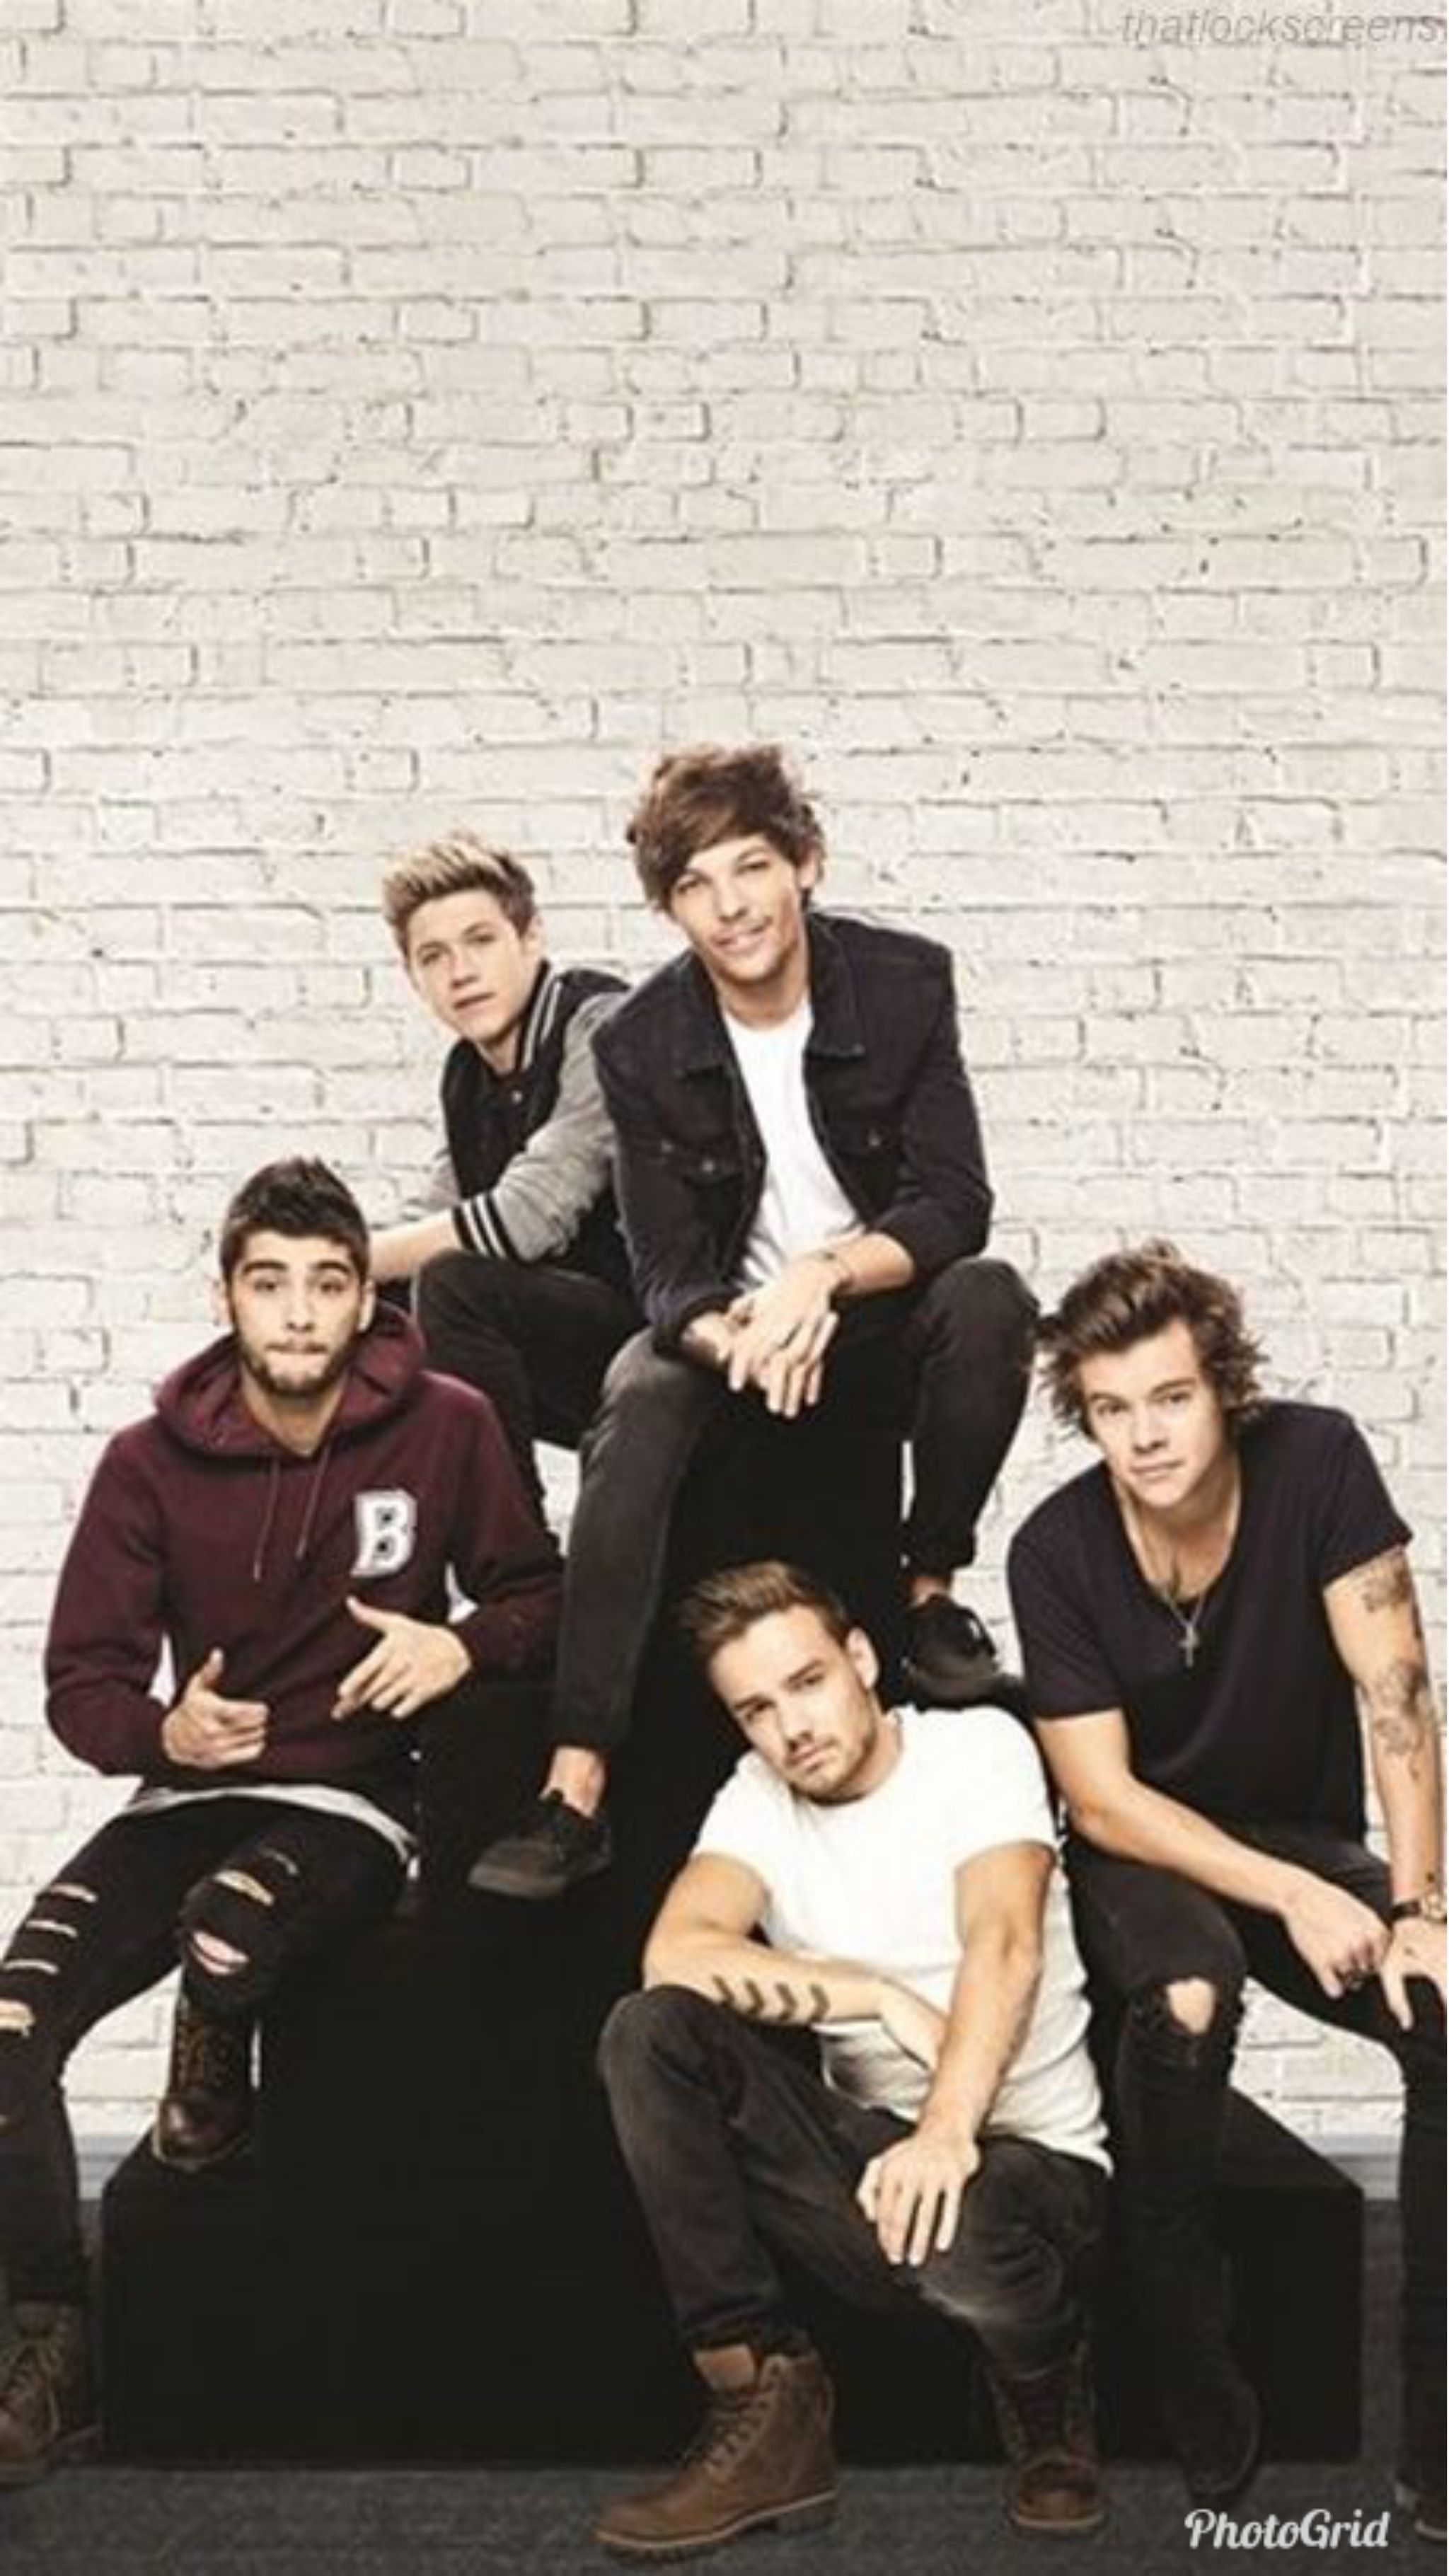 One Direction Wallpapers For Iphone In 2020 One Direction Pictures One Direction Wallpaper One Direction Background